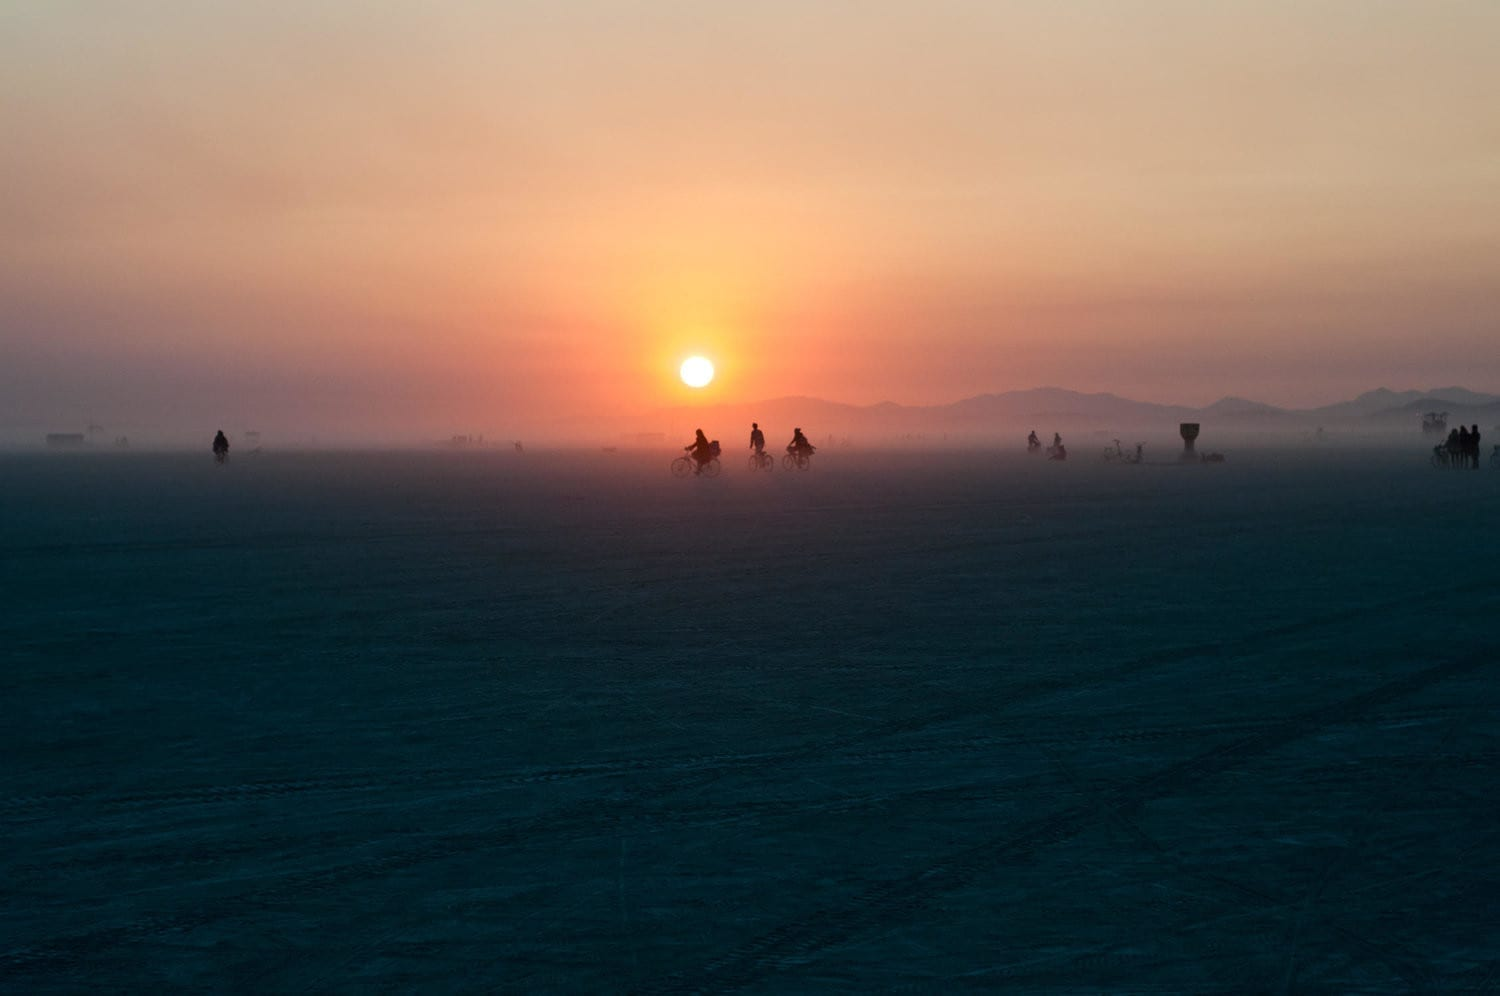 A sunset in the mountainous landscape of the Black Rock Desert, Nevada behind several bike riders.